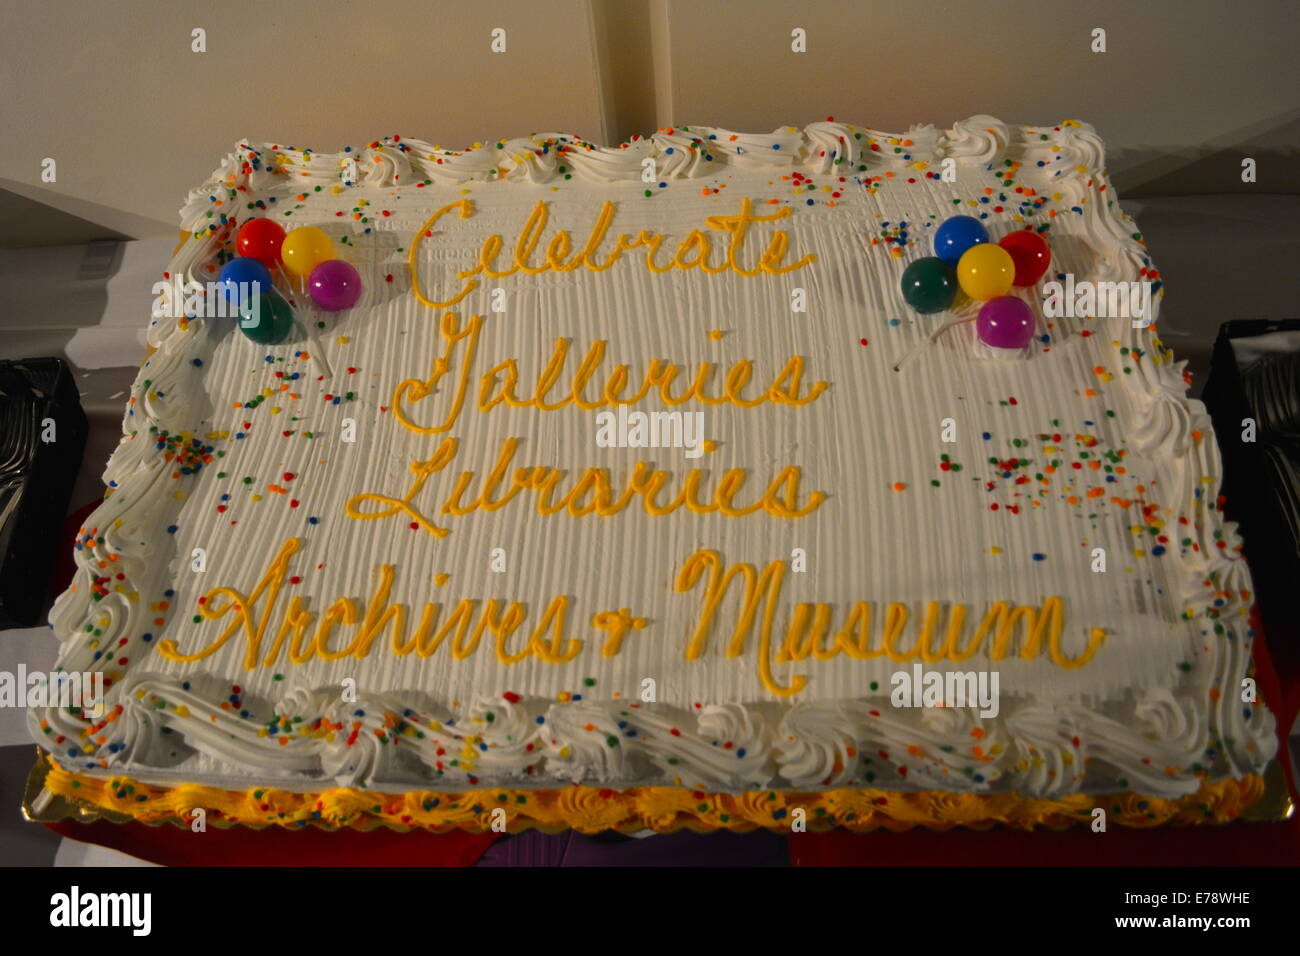 GLAM Philly Day Out Celebration. The cake (find the typo). At the Chemical Heritage Foundation - Stock Image